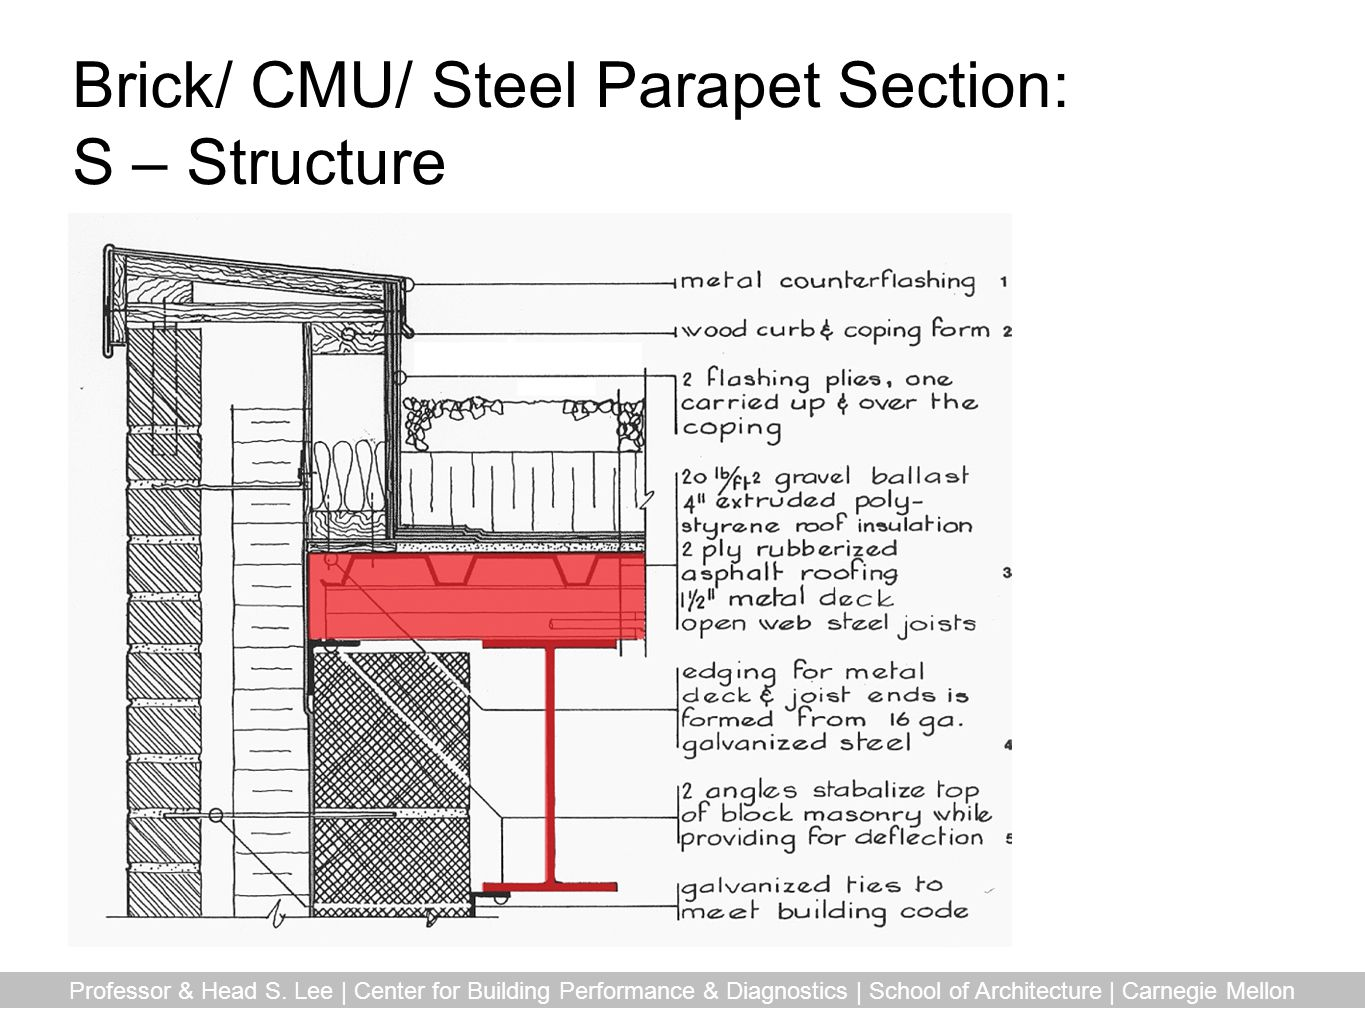 Brick/ CMU/ Steel Parapet Section: S – Structure